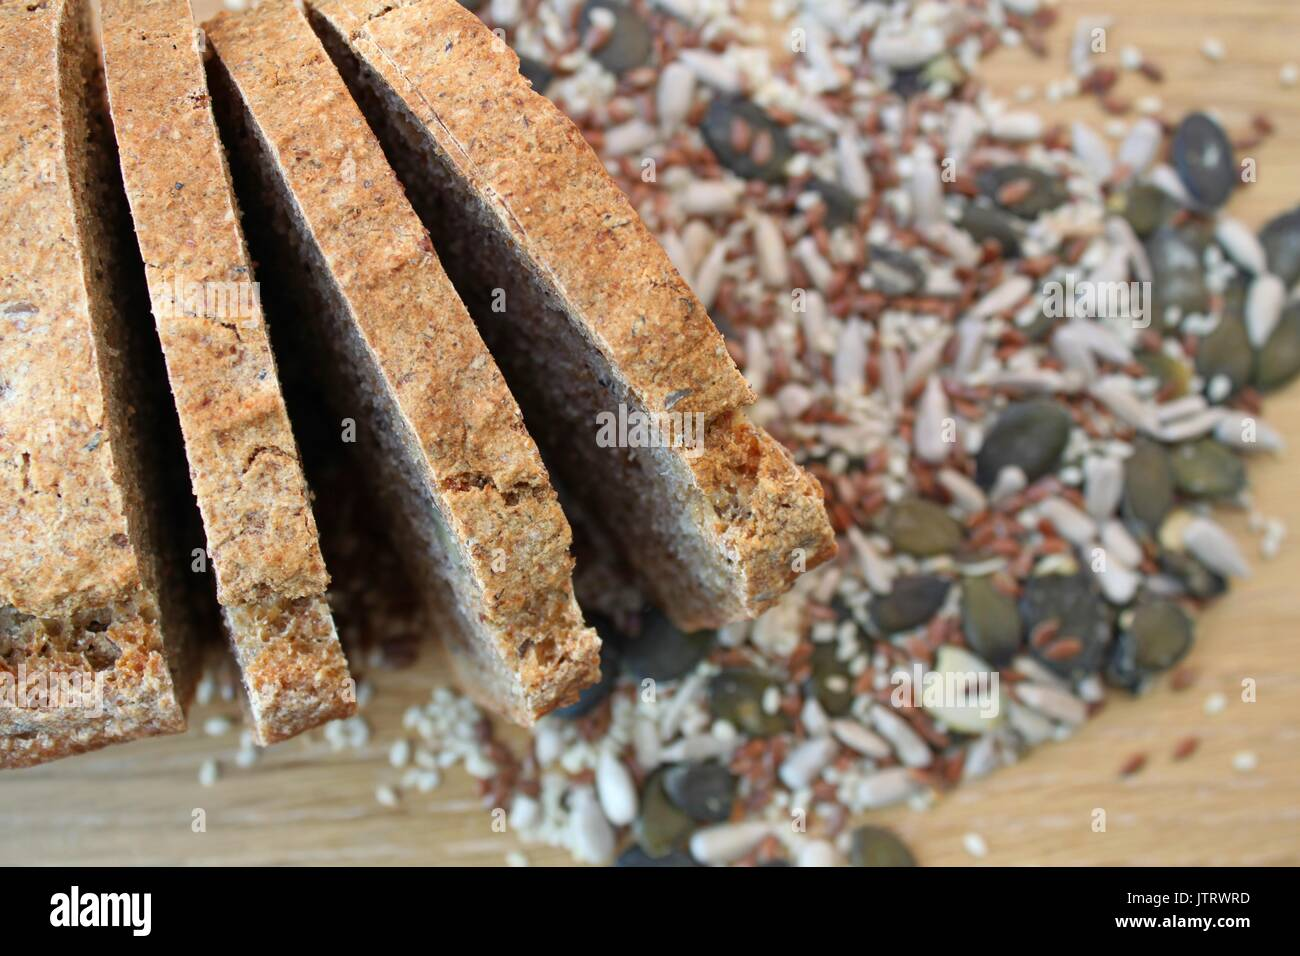 Homemade wholegrain bread with different seeds Stock Photo